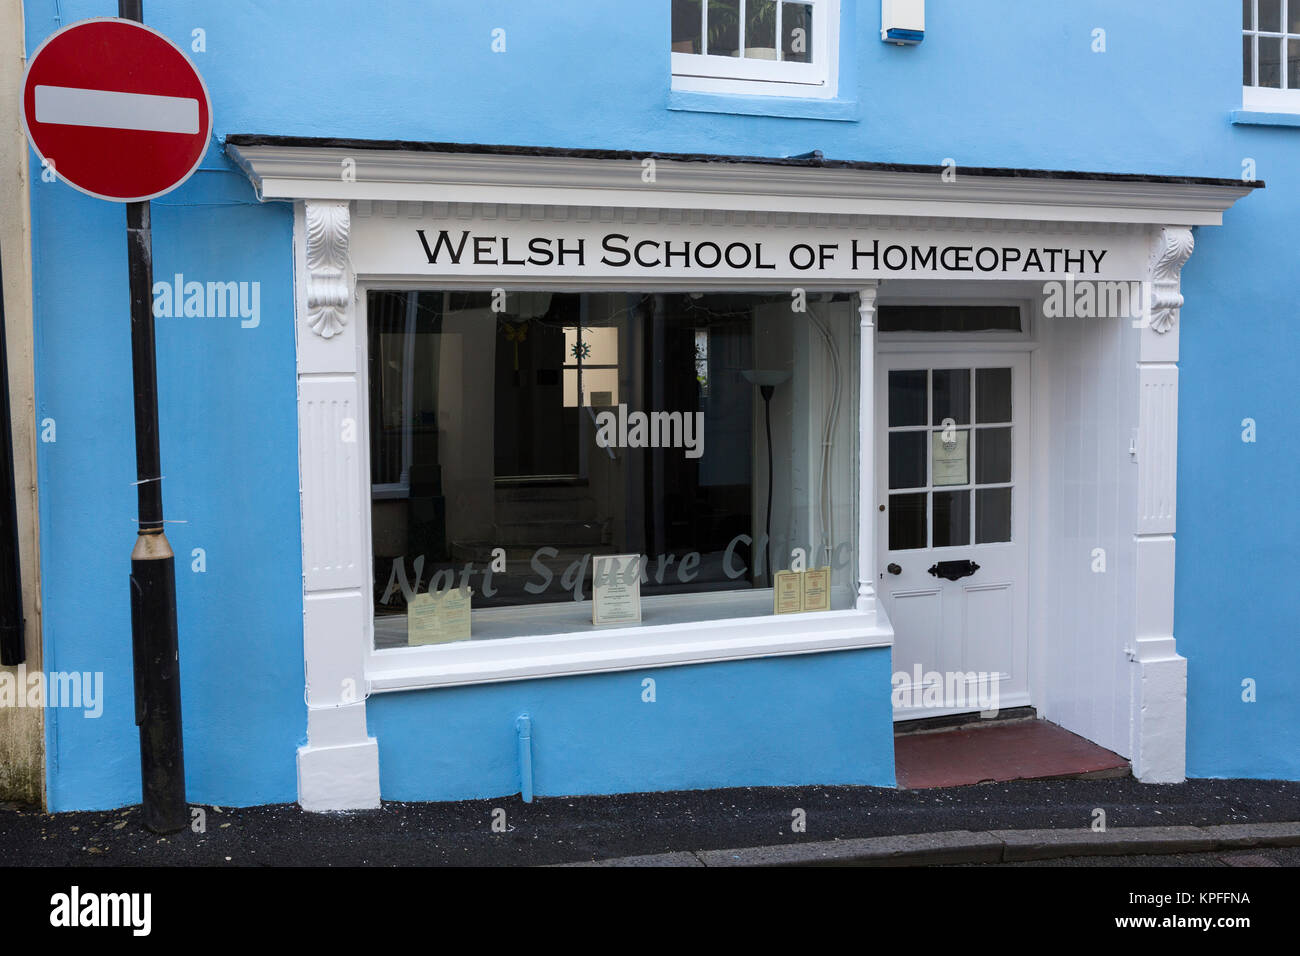 Welsh School of Homeopathy building in Carmarthen, providing alternative healing - Stock Image